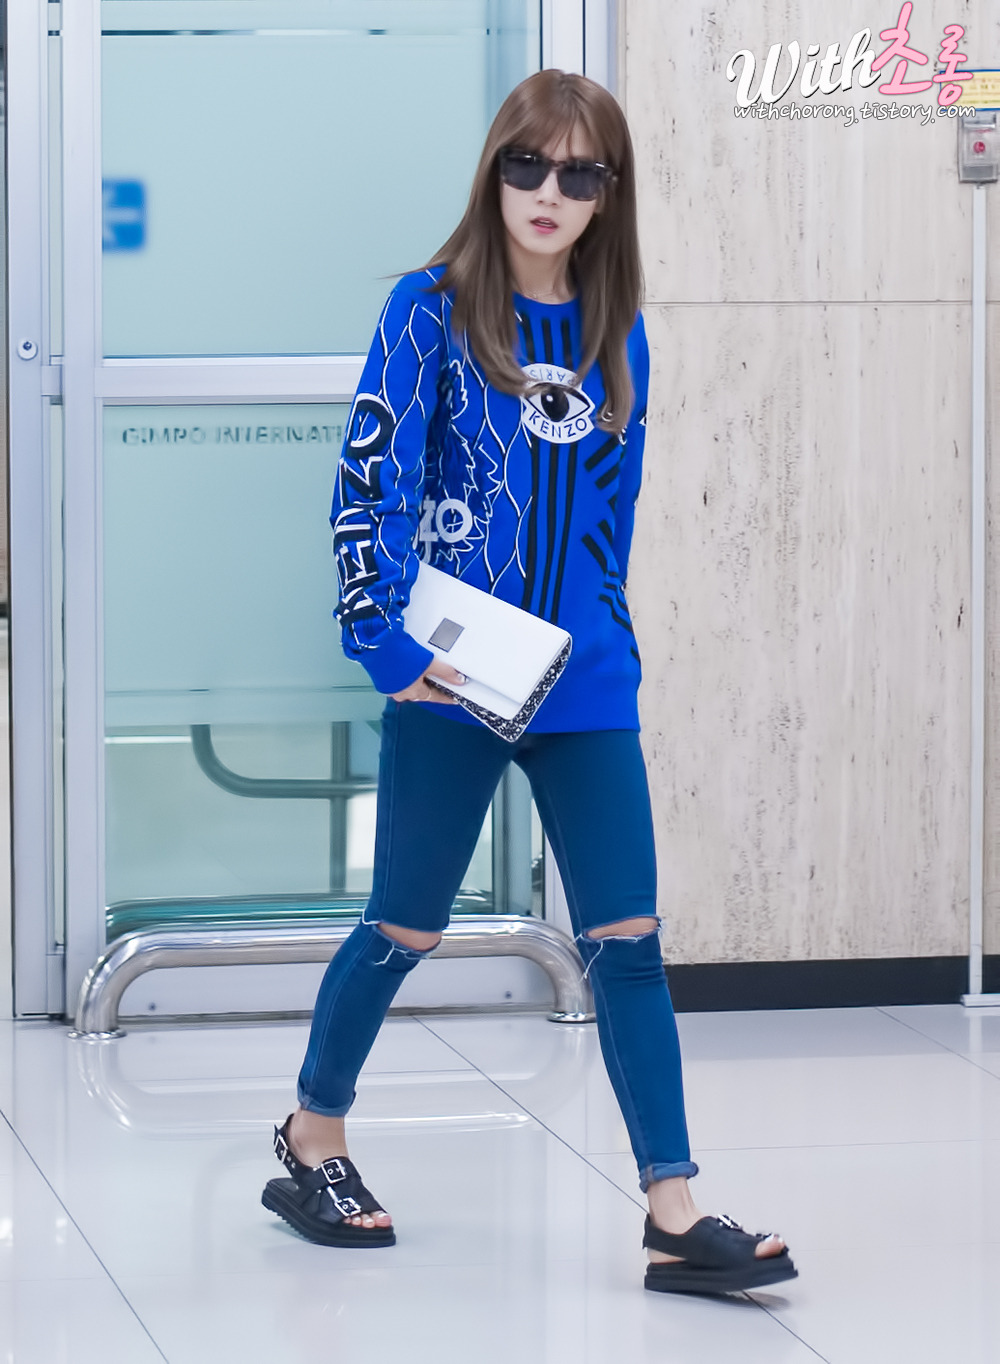 Apink Chorong Airport Fashion Official Korean Fashion